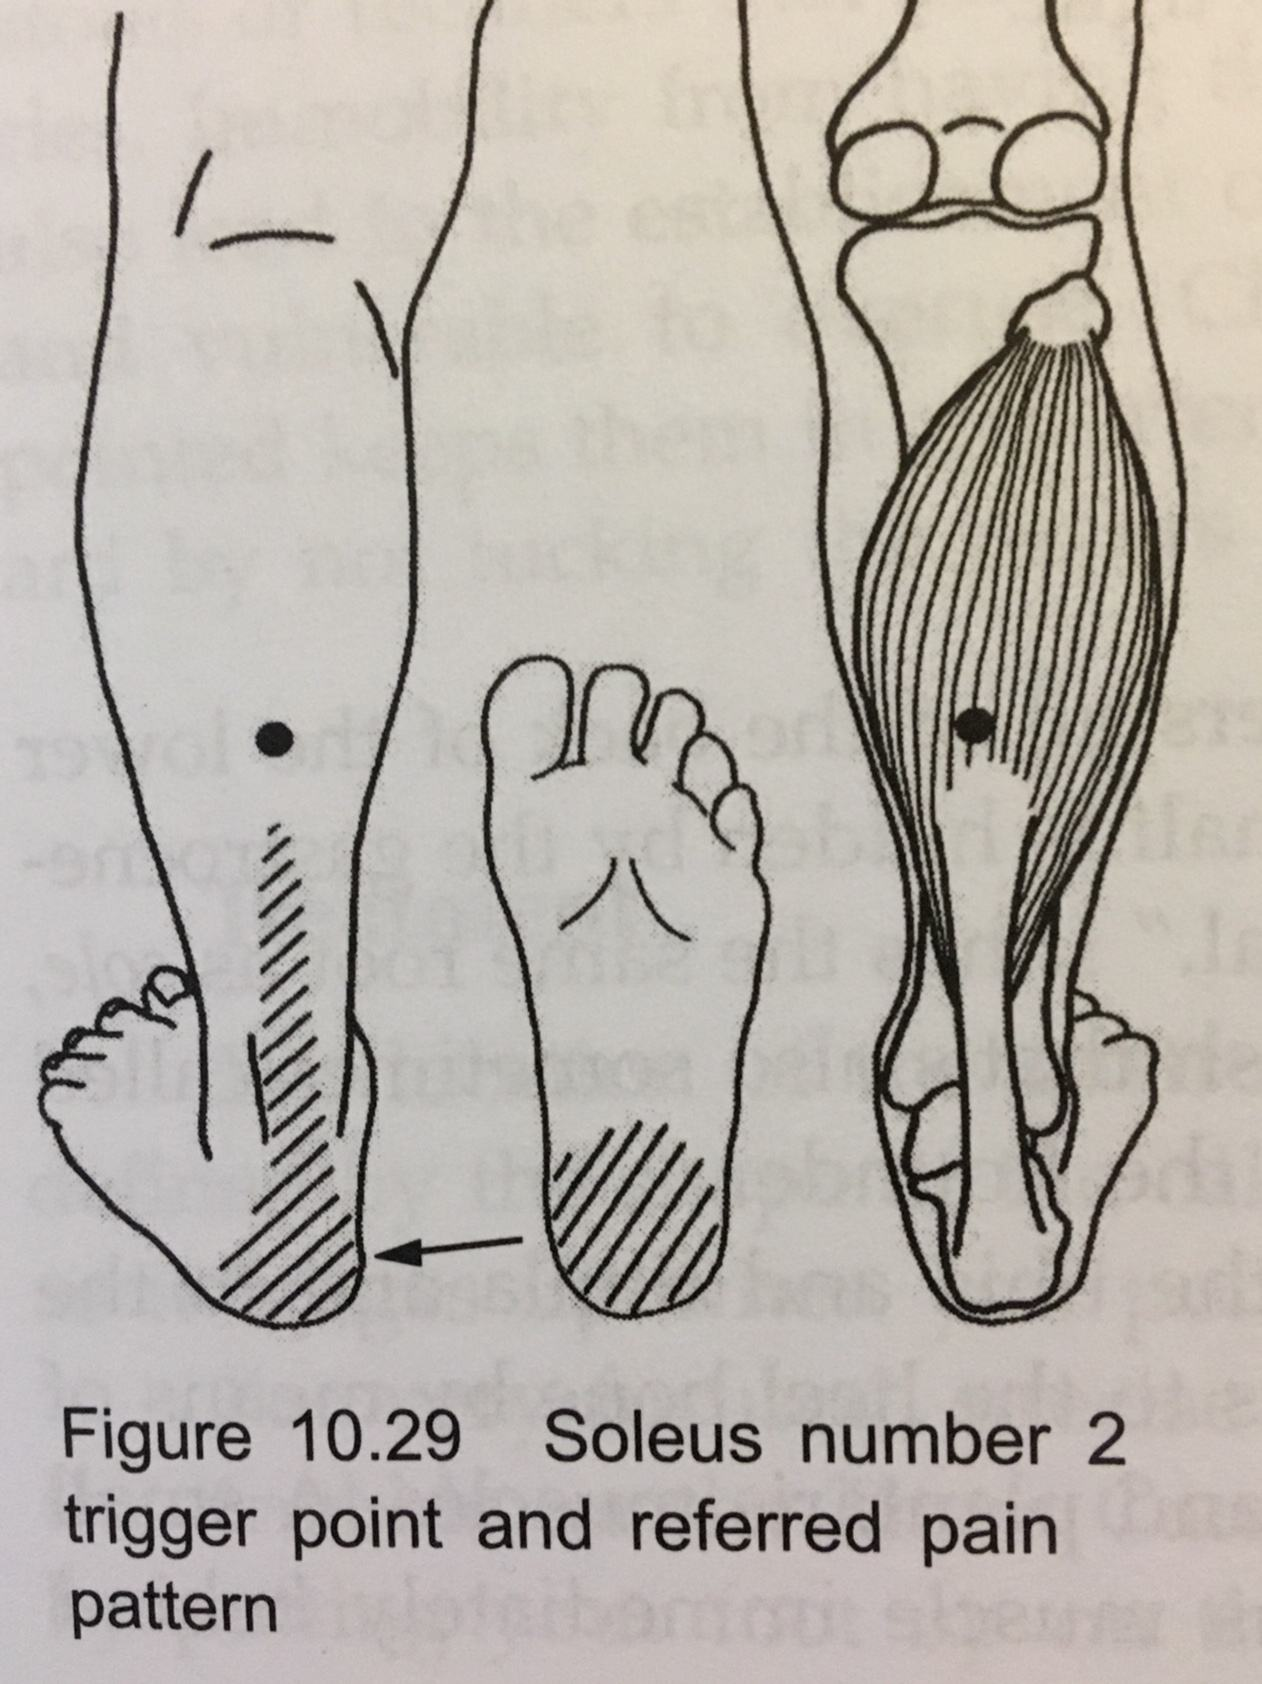 Soleus Number 2 Trigger Point and Referred Pain Pattern